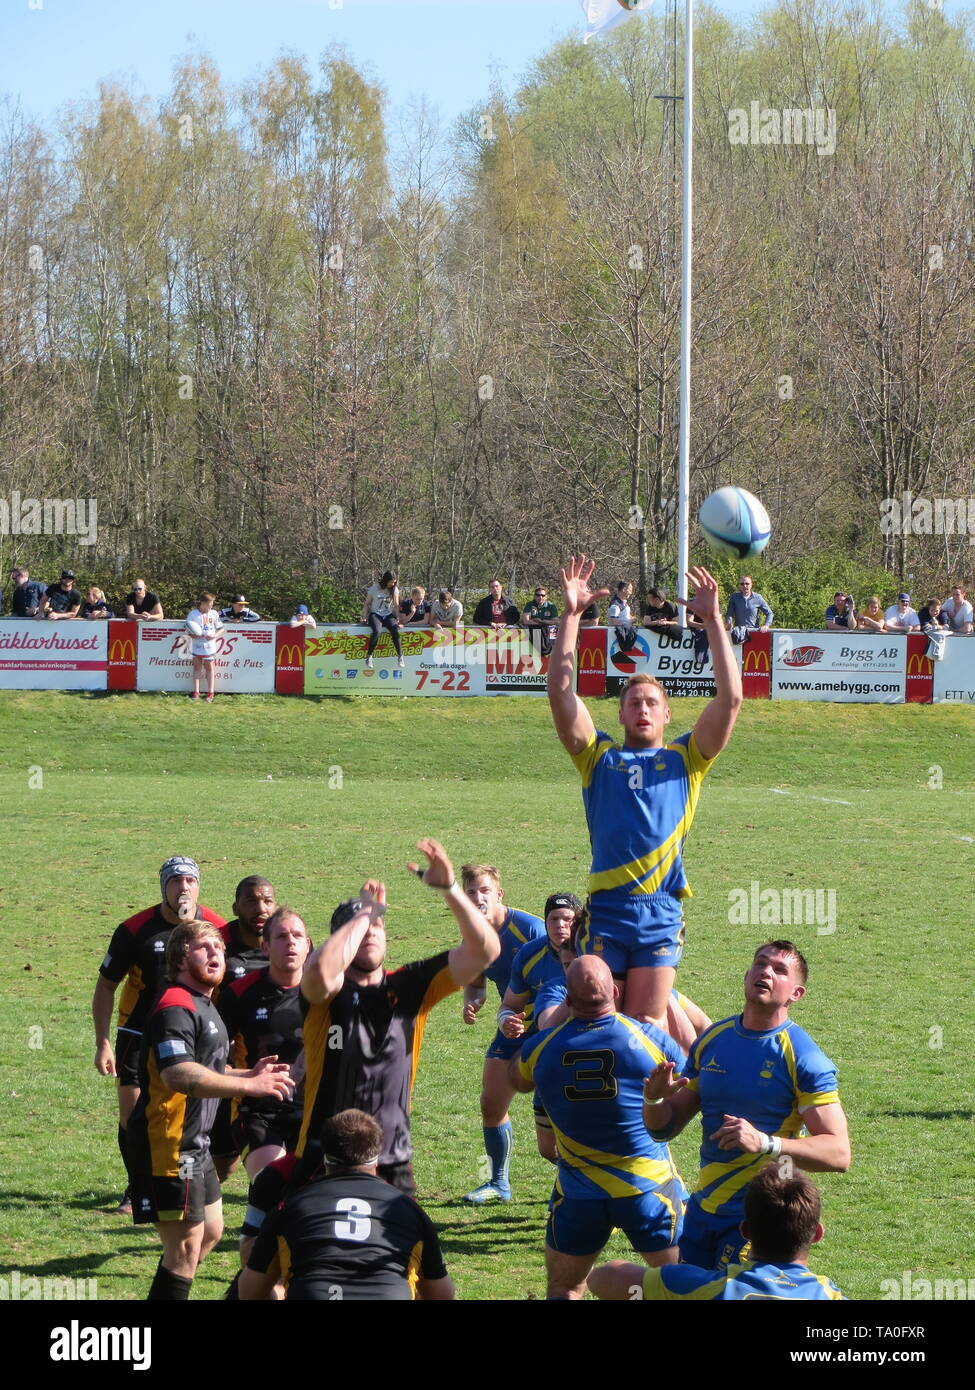 Rugby scene of Germany vs Sweden - Stock Image